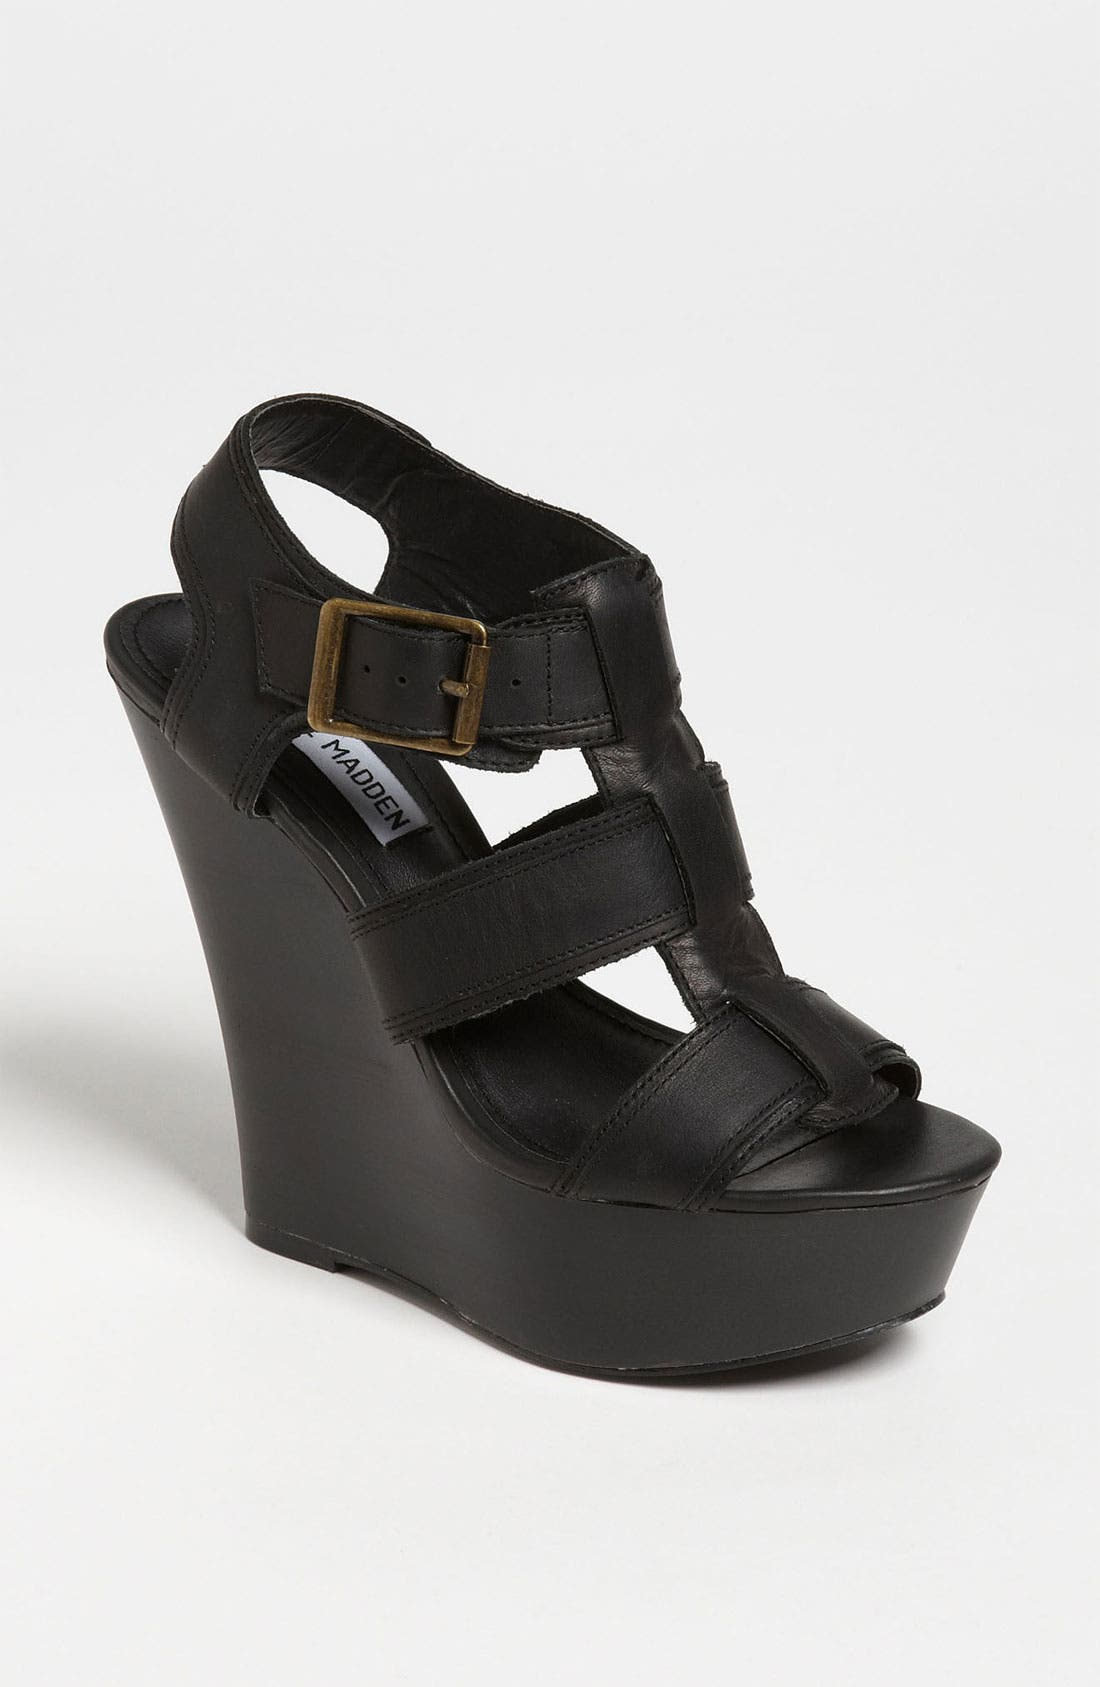 STEVE MADDEN 'Wanting' Wedge Sandal, Main, color, 001